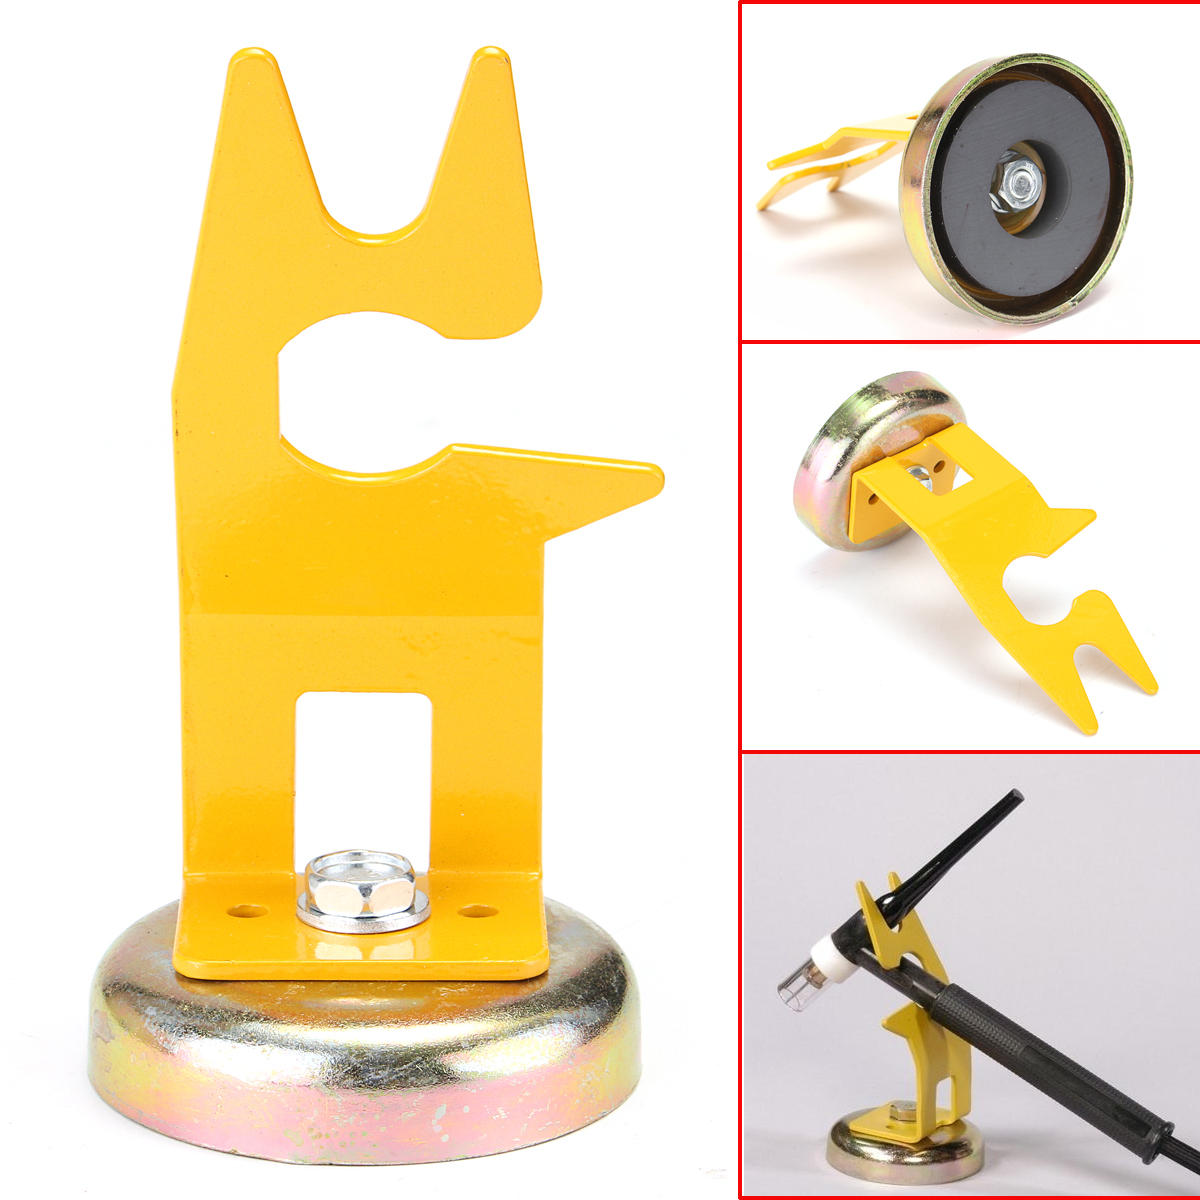 Tig Welding Torch Magnetic Stand Holder Support For Holding Hot Tig Torches Cup Sale Banggood Com